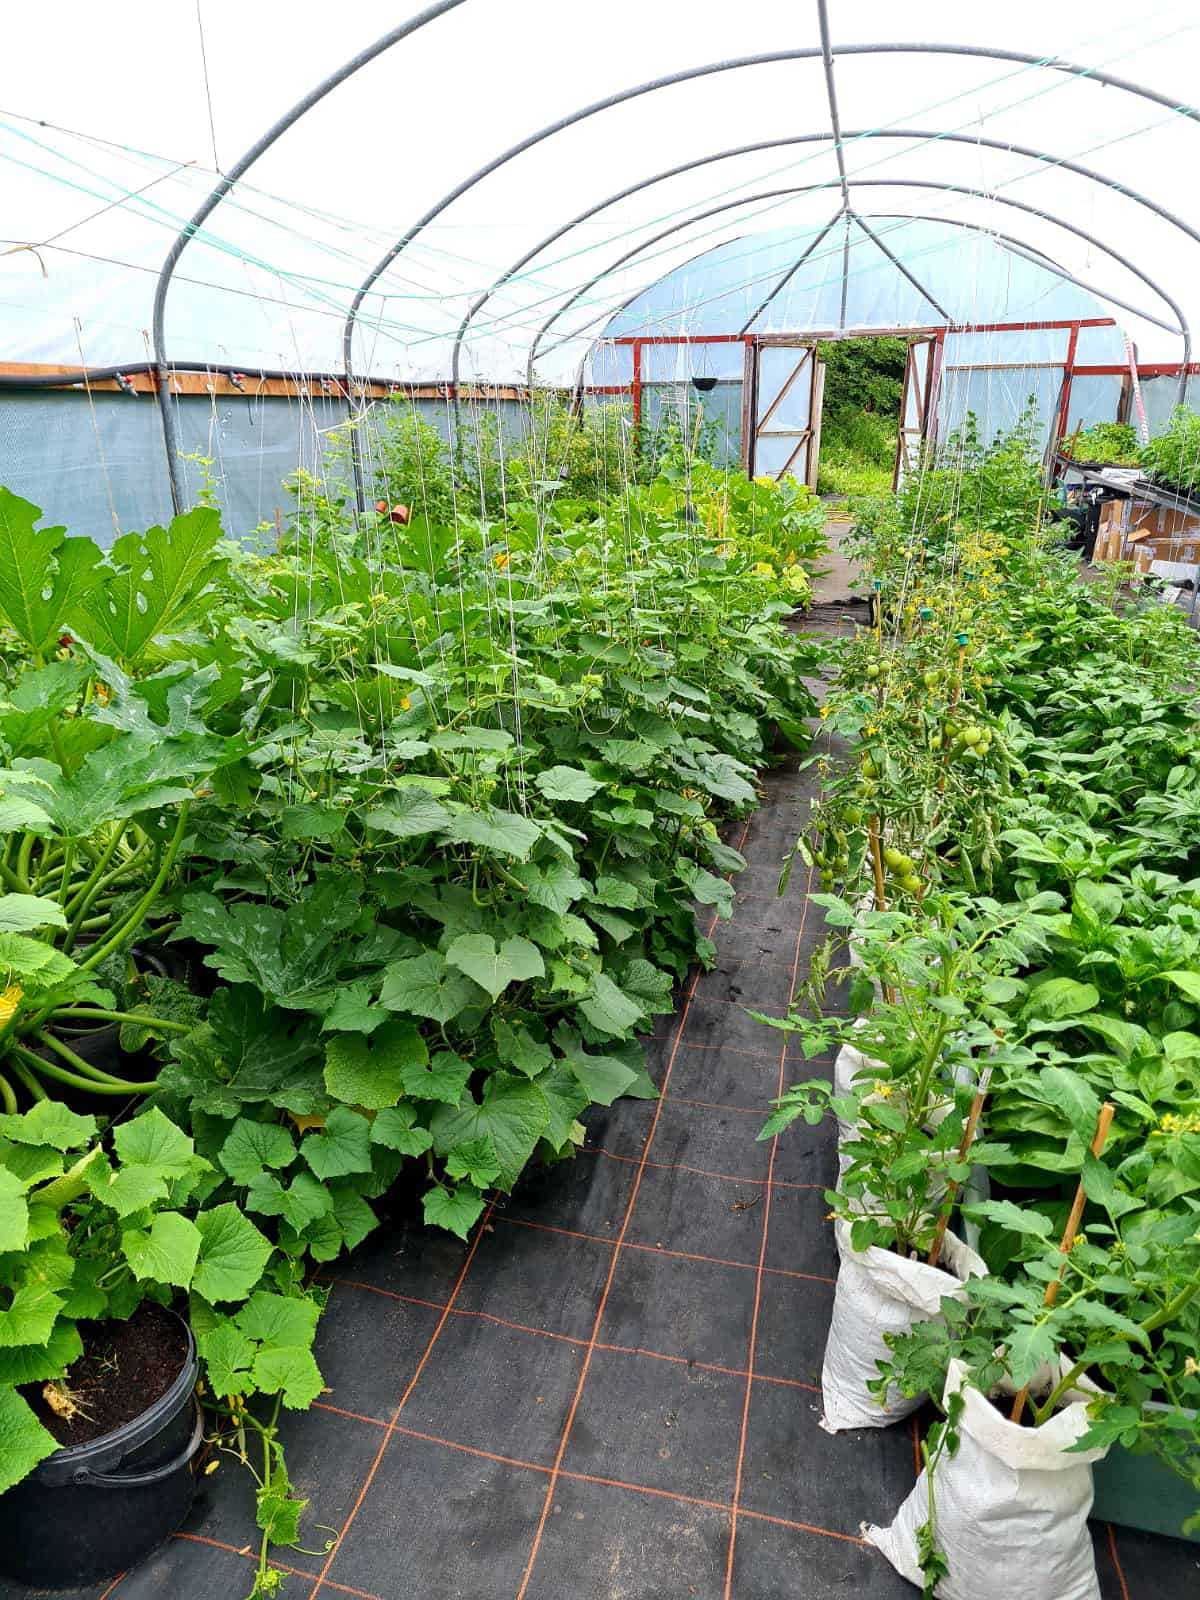 Another poly tunnel picture from Incredible Edible Knowsley by Kimpton